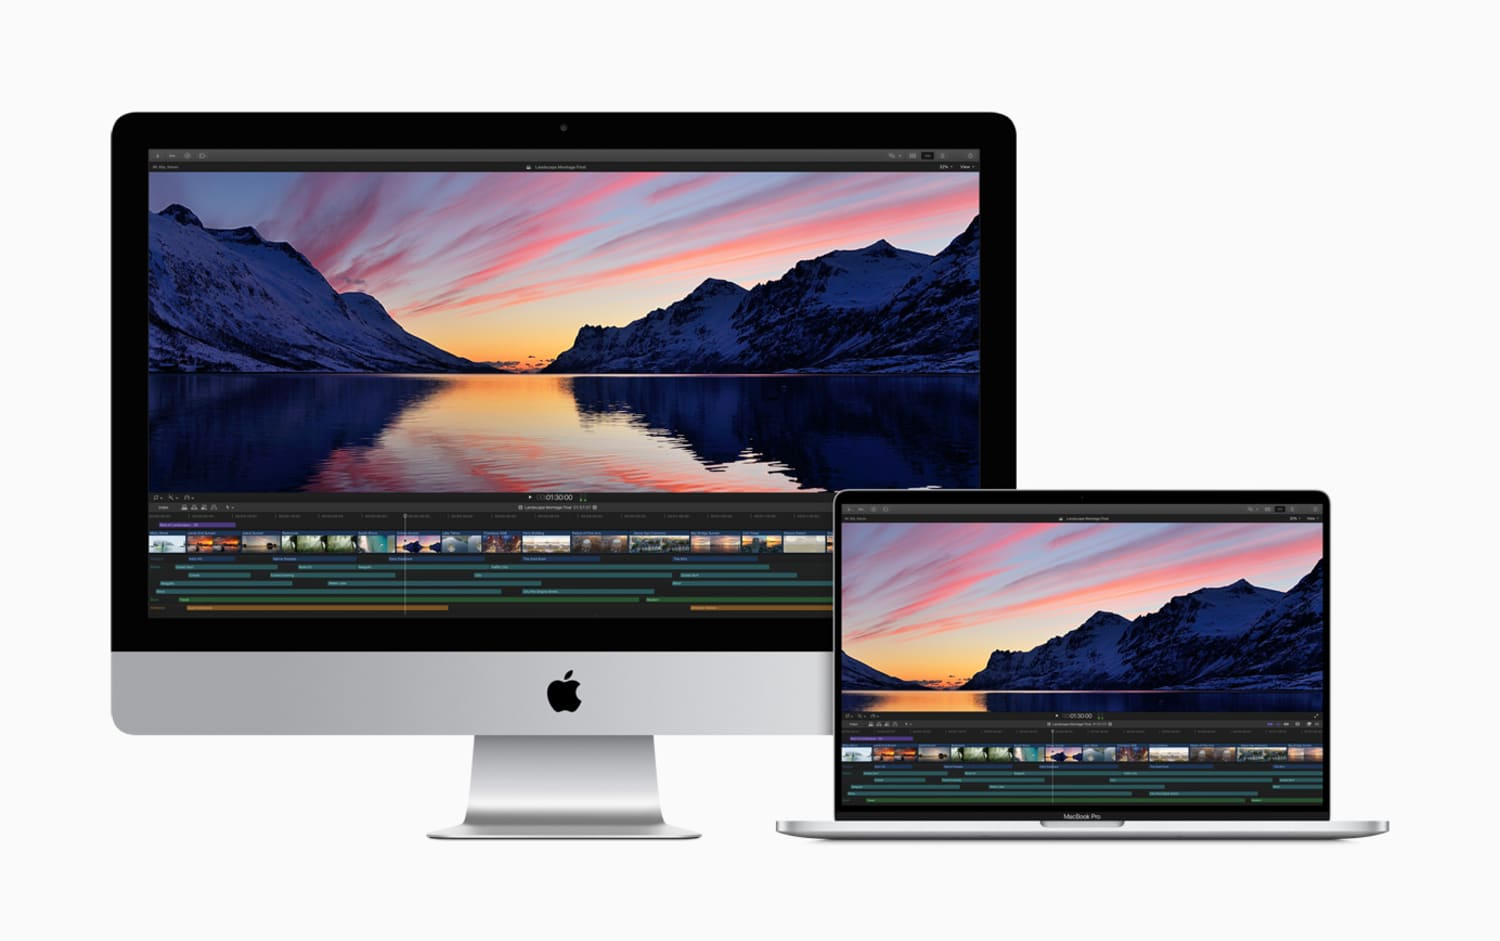 final-cut-pro-x-now-has-updated-workflow-upgrades-20200825-1